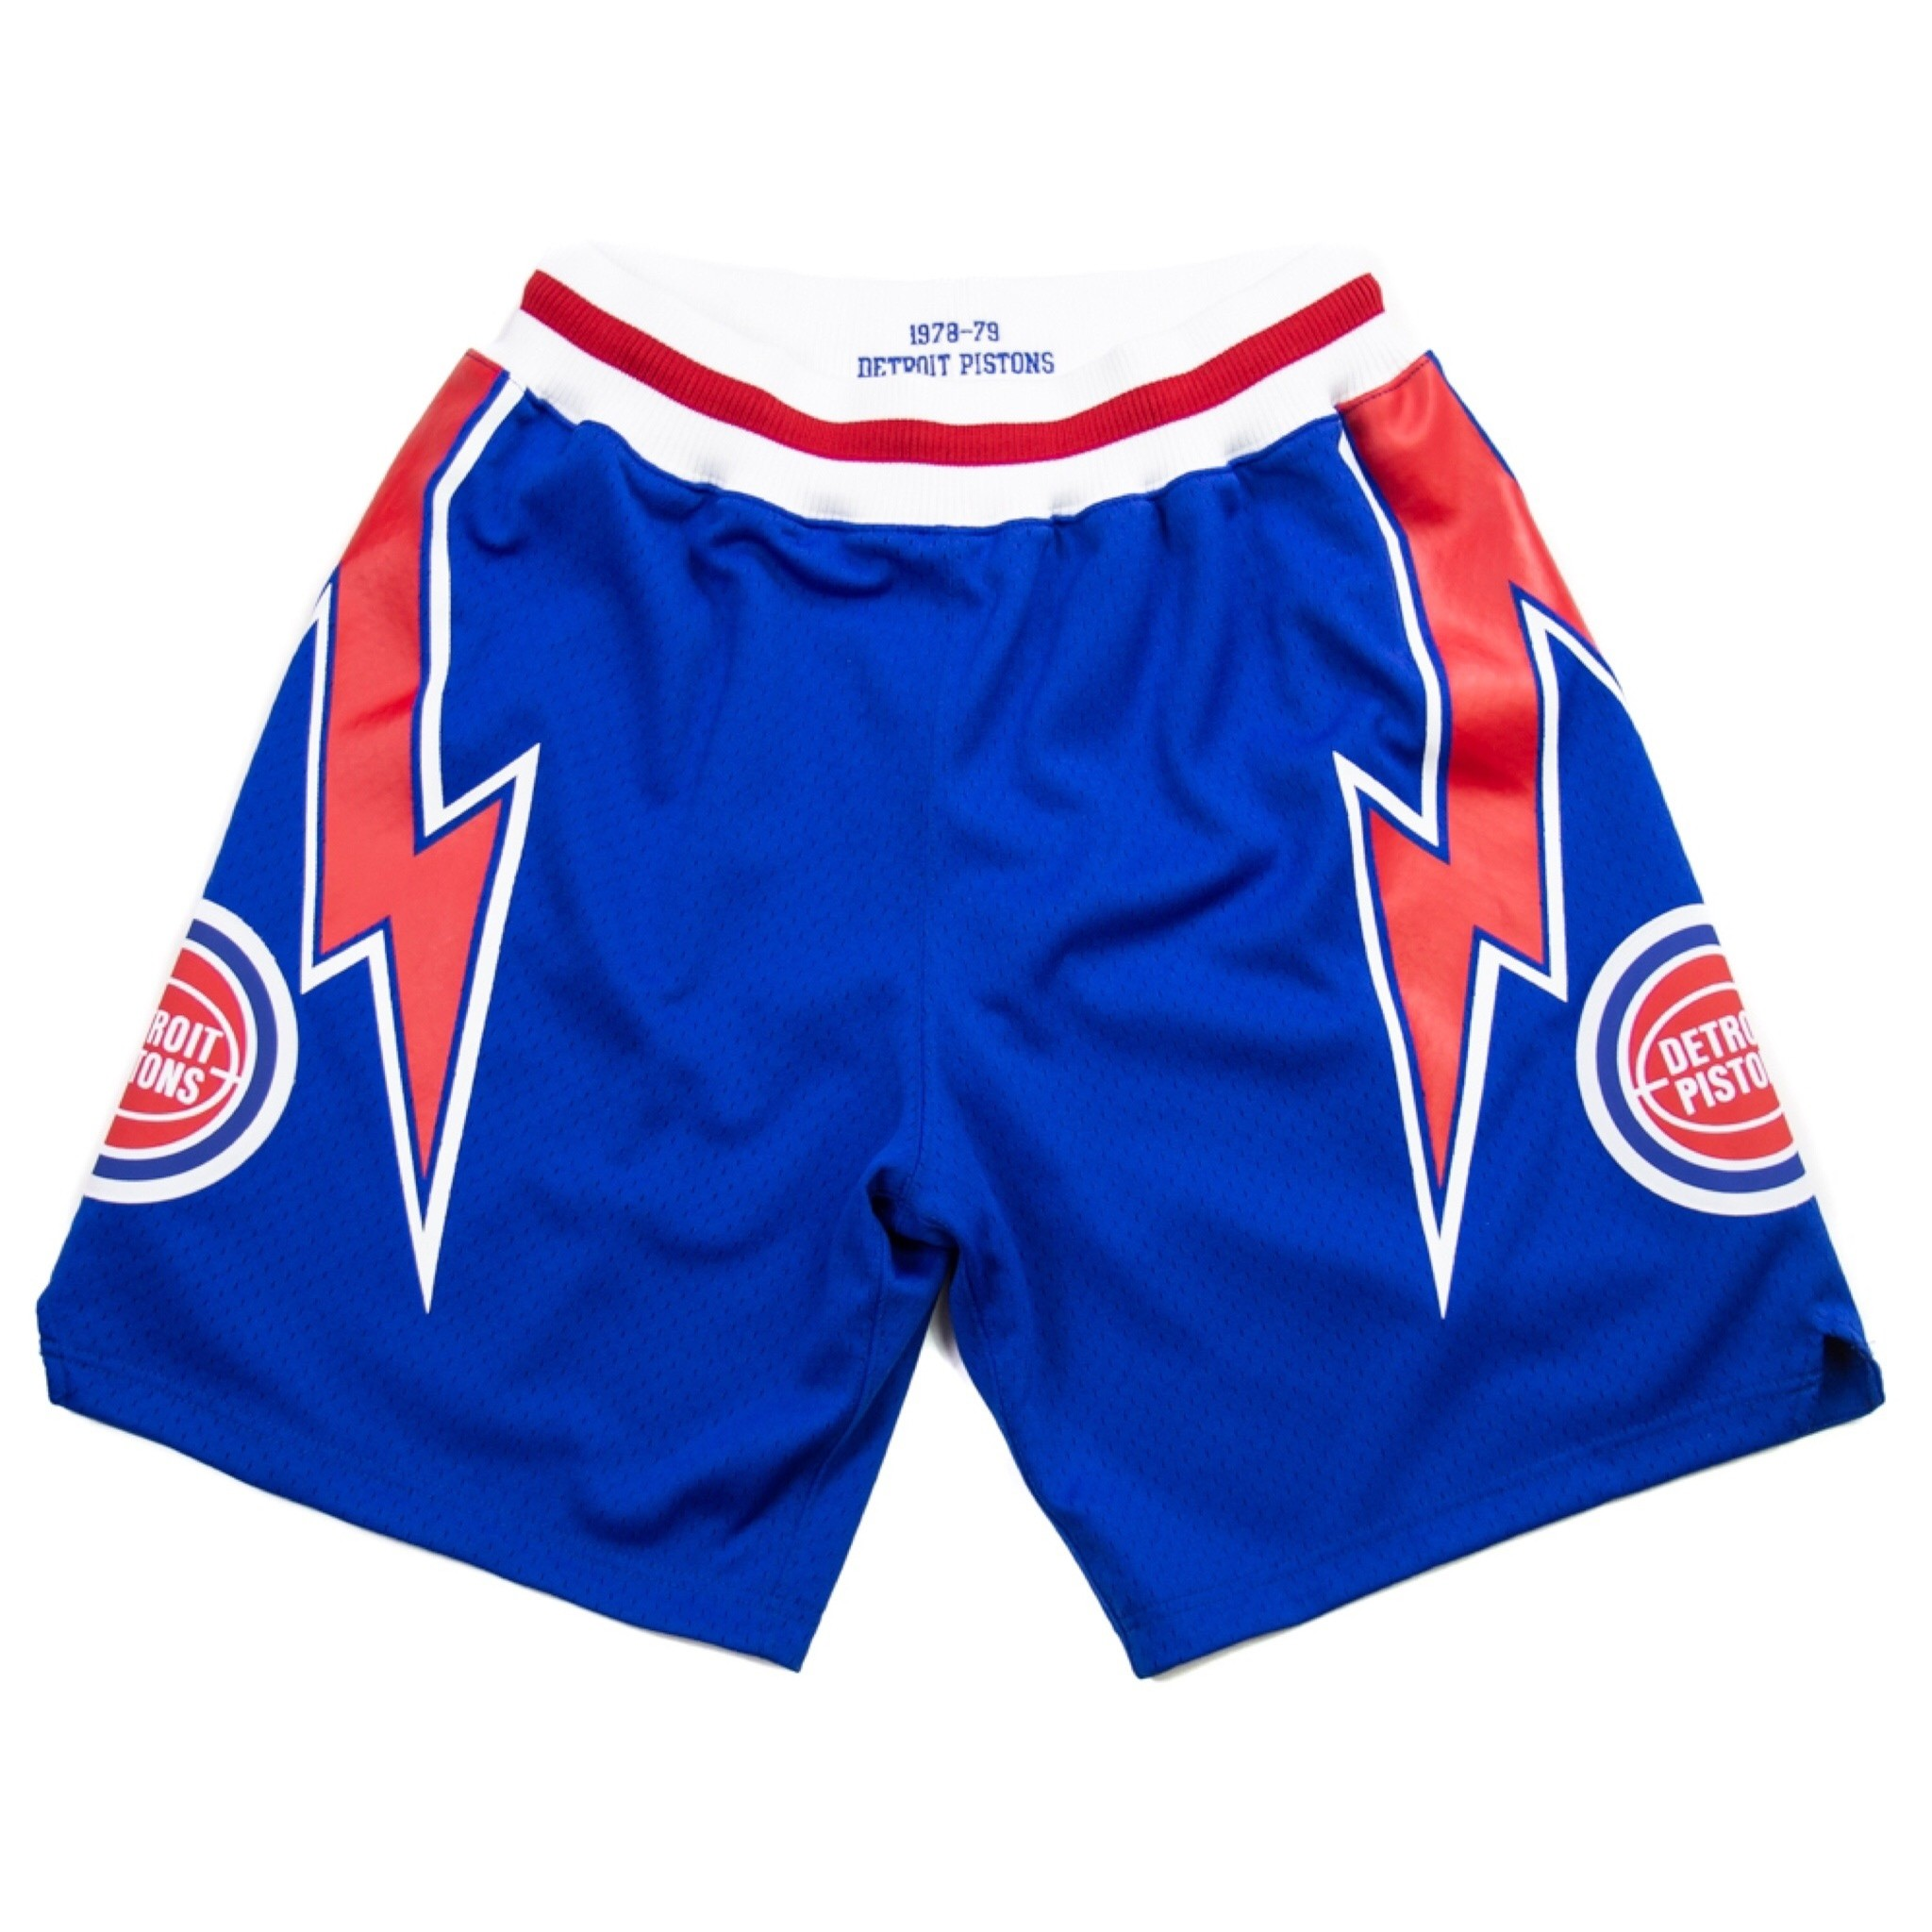 Detroit Pistons 78-79 Authentic Shorts (Away)